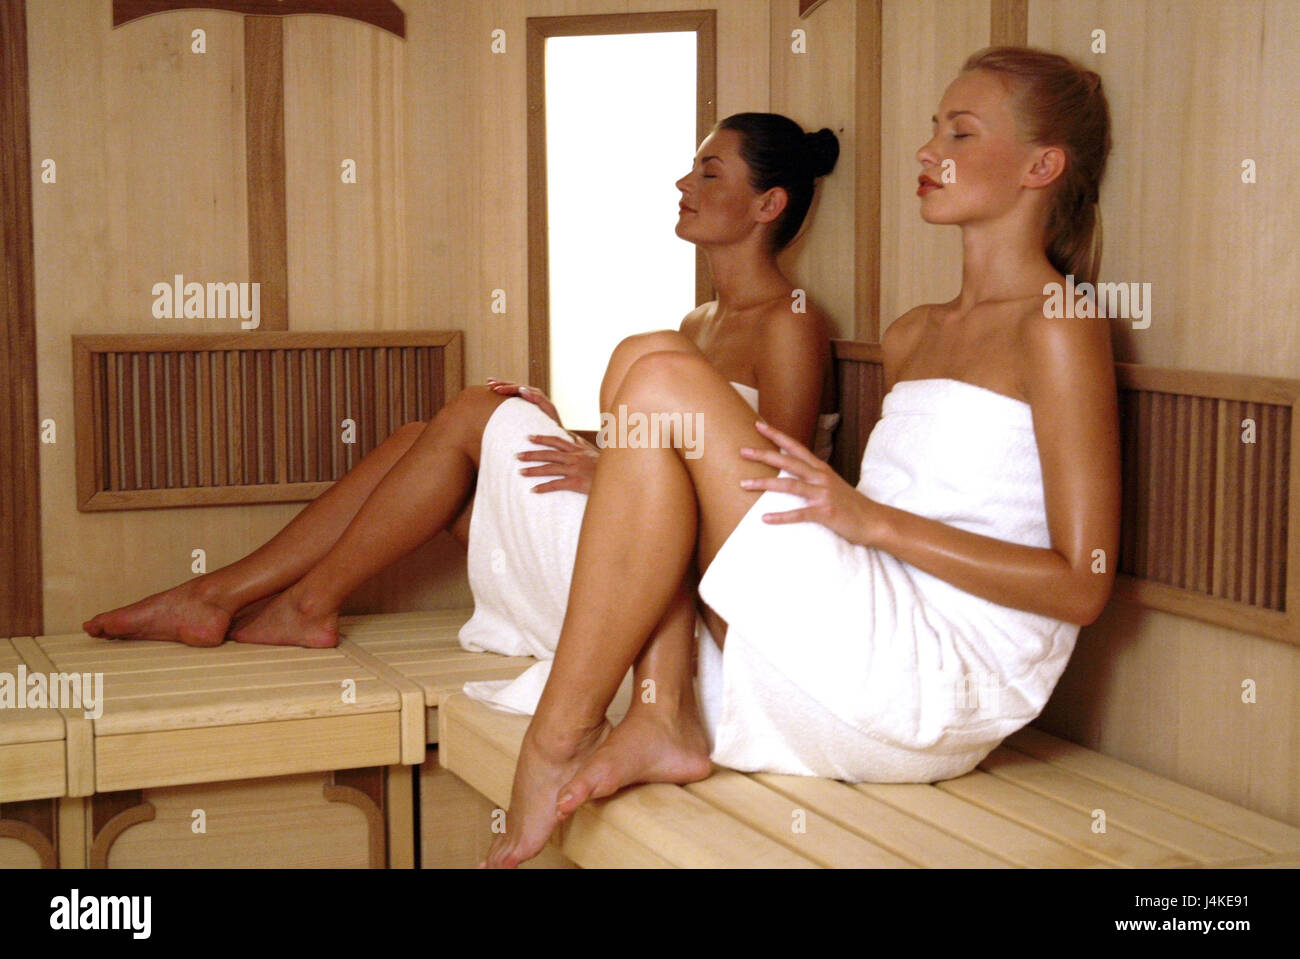 naked-hot-sauna-pictures-mature-woman-sex-video